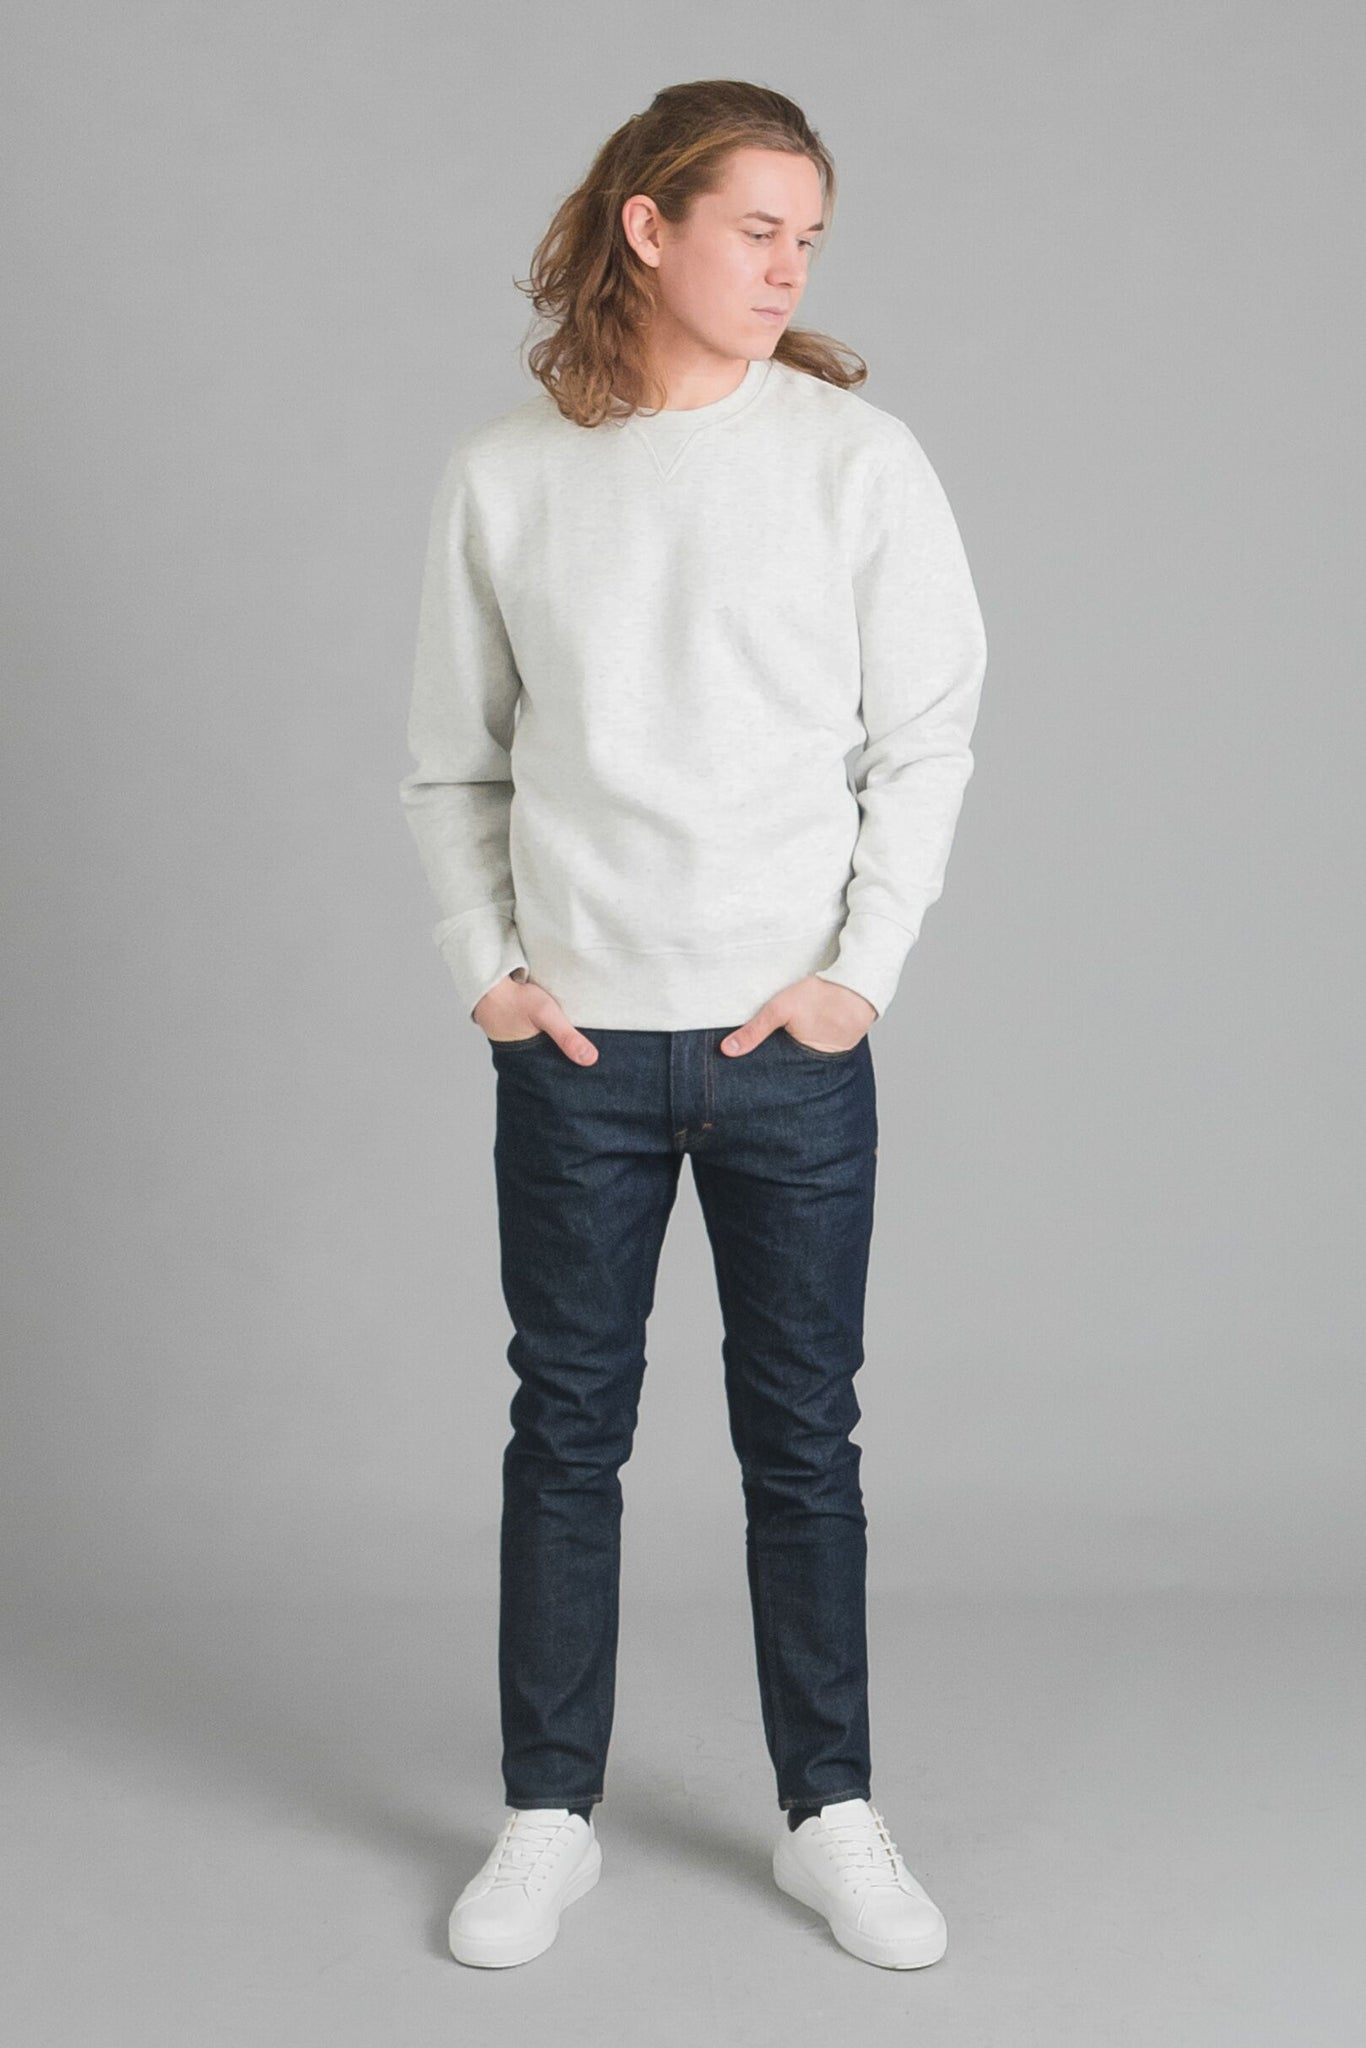 "Levi's Made & Crafted Relaxed Crewneck I INCH"" Tampere"